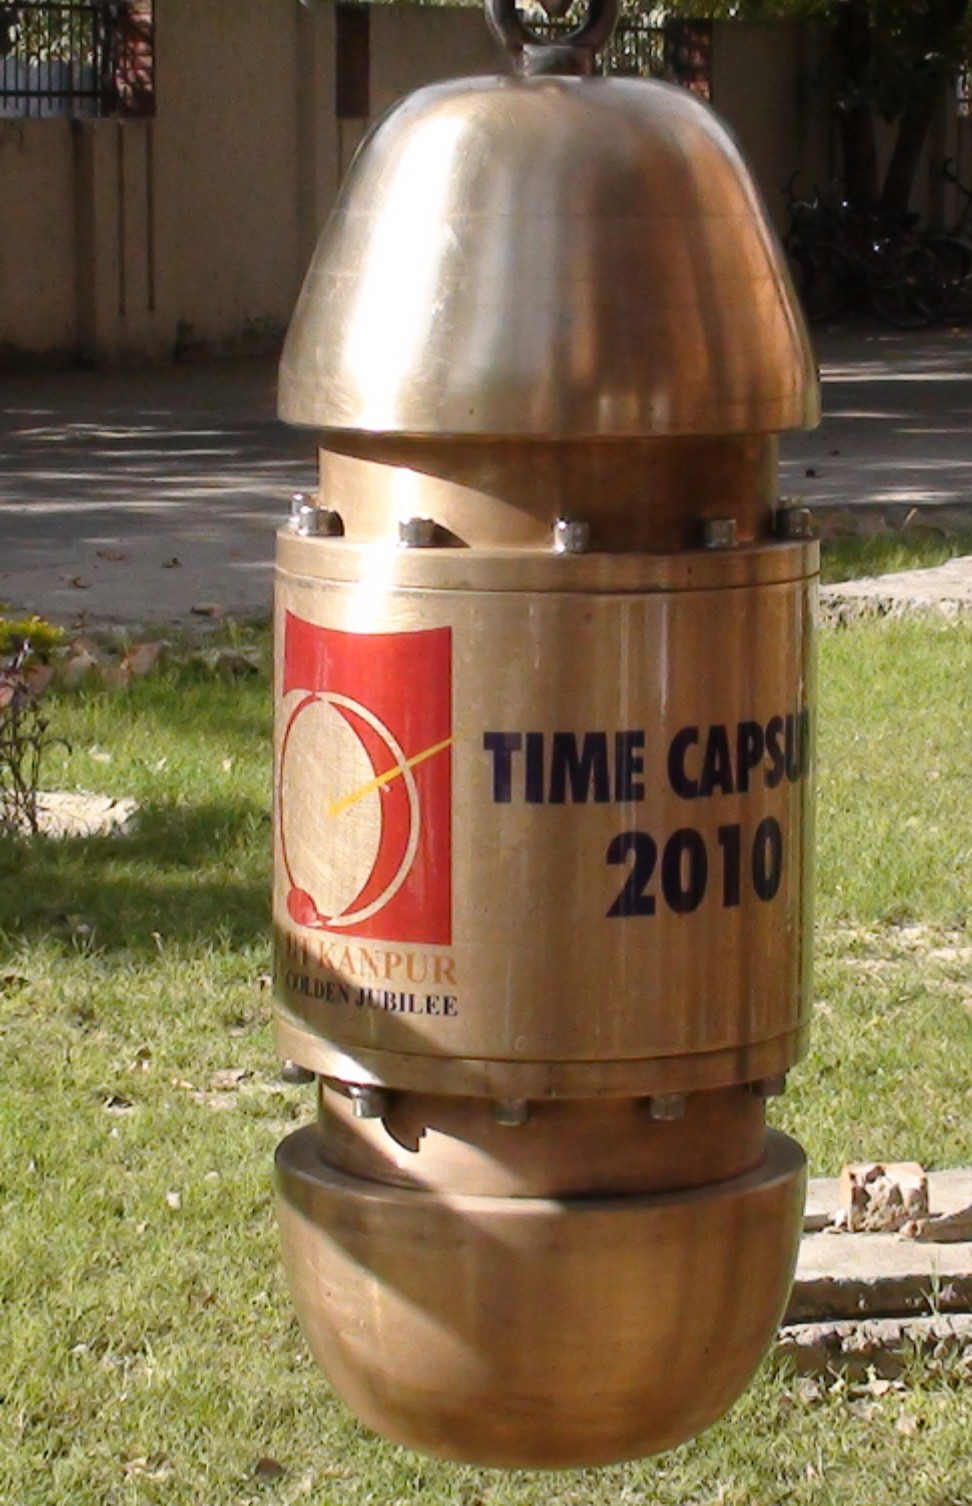 Time Capsule Definition Meaning: What Is A TIME CAPSULE?